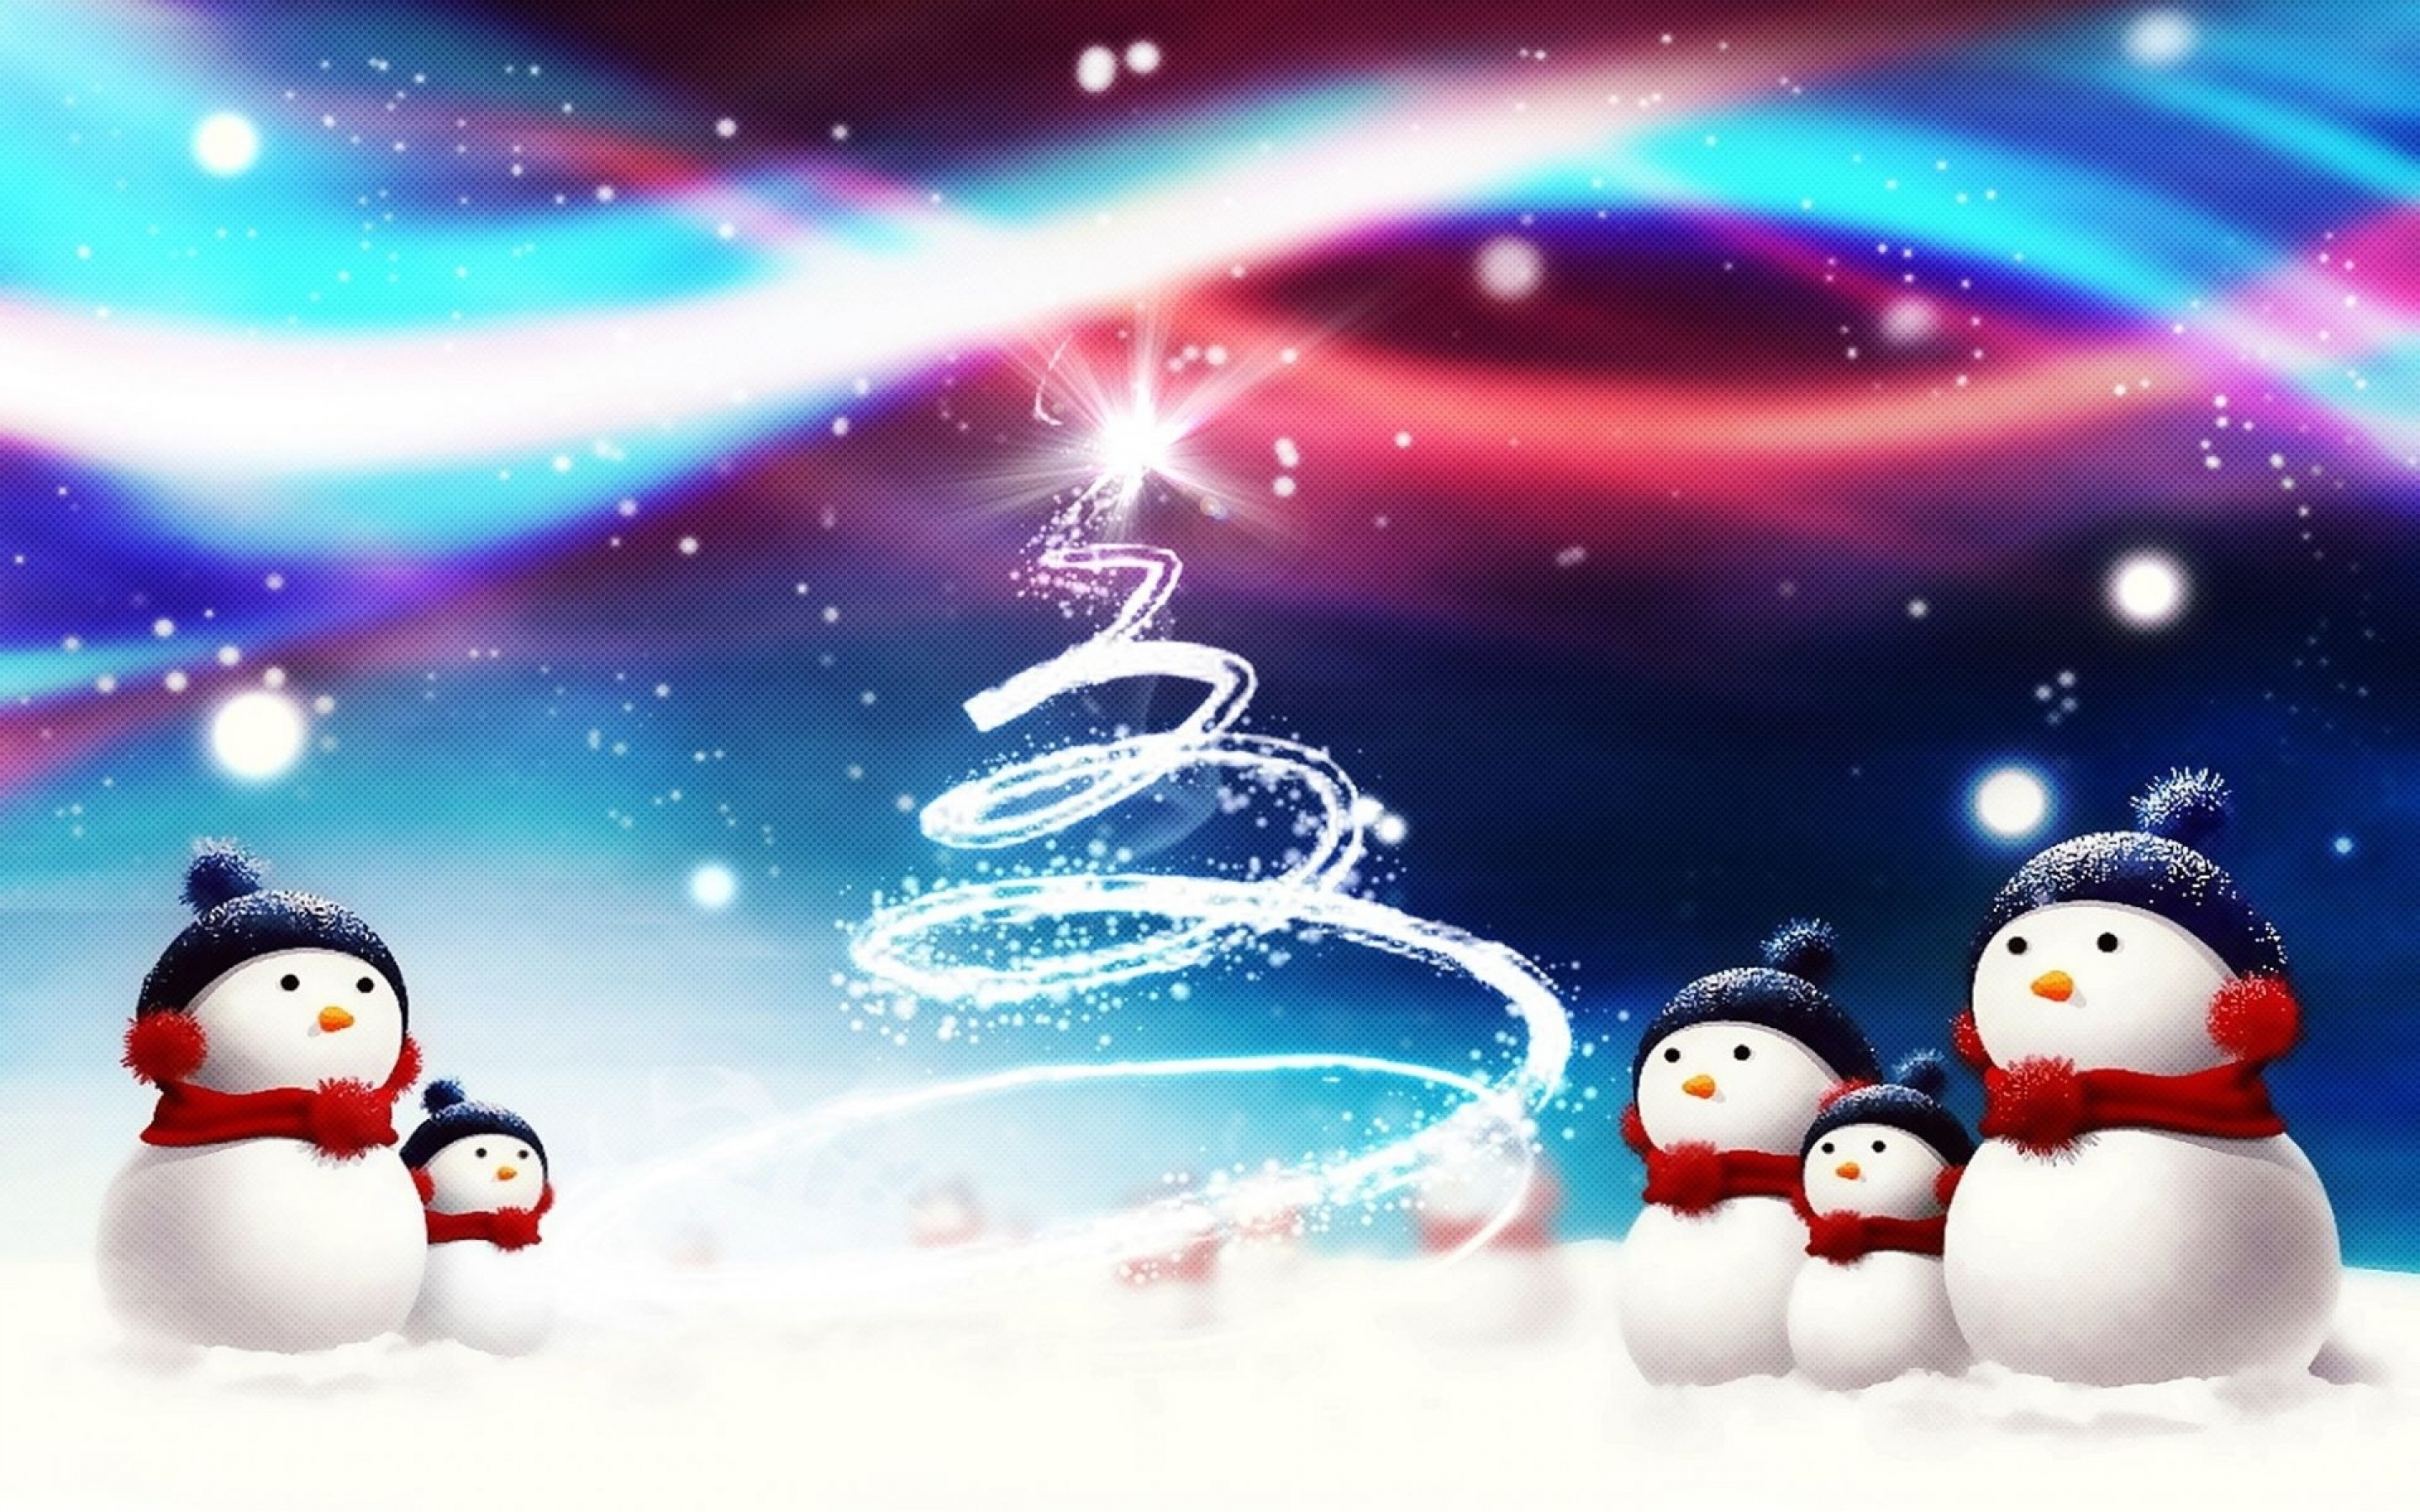 wallpaper christmas wallpapers - photo #5